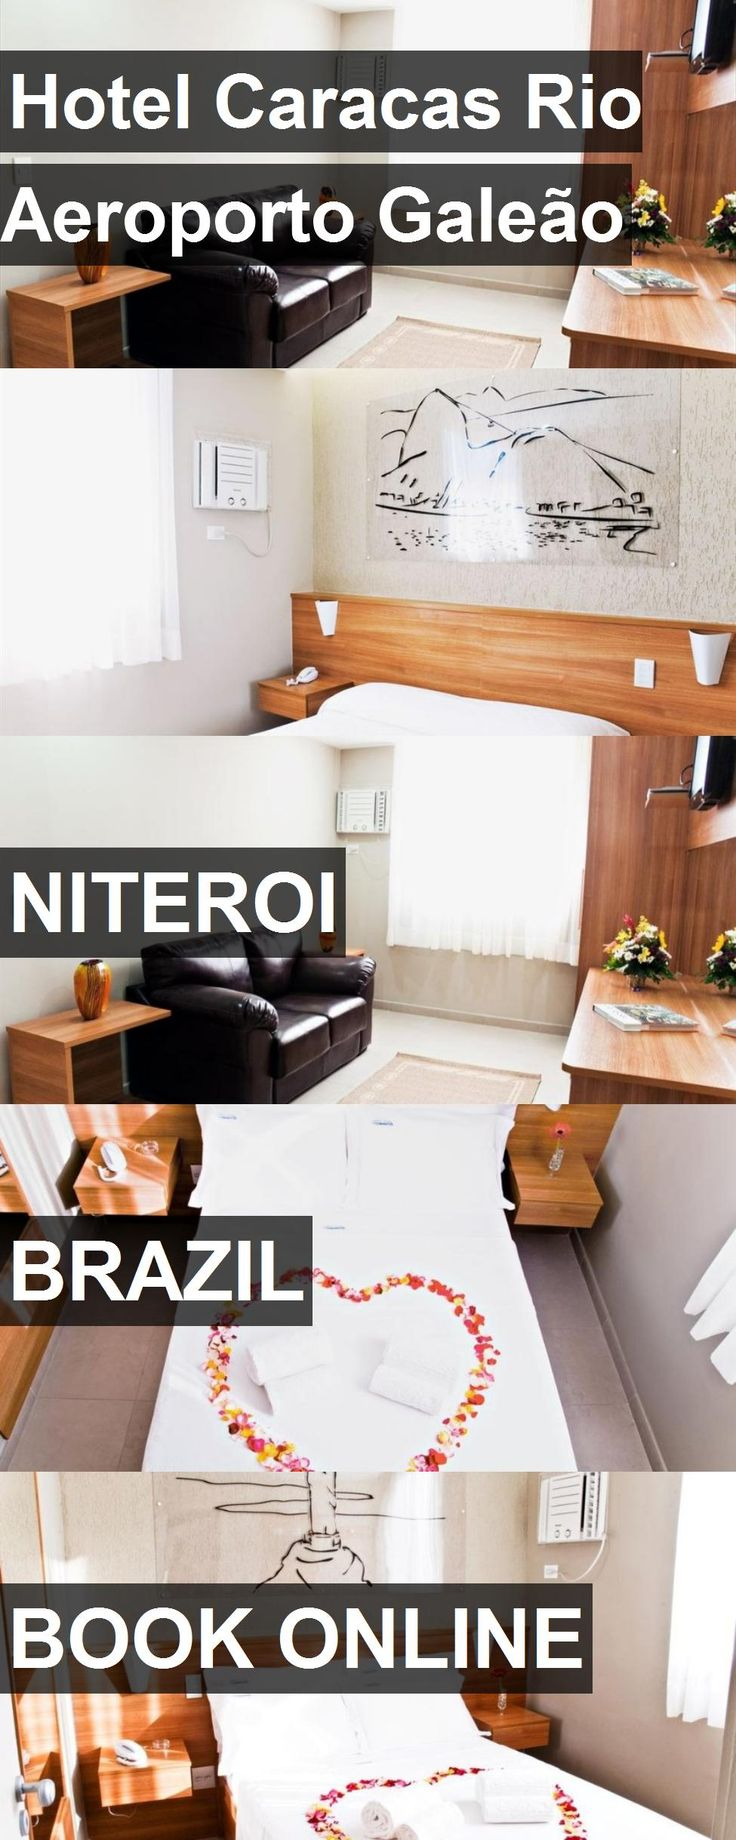 Hotel Caracas Rio Aeroporto Galeão in Niteroi, Brazil. For more information, photos, reviews and best prices please follow the link. #Brazil #Niteroi #travel #vacation #hotel